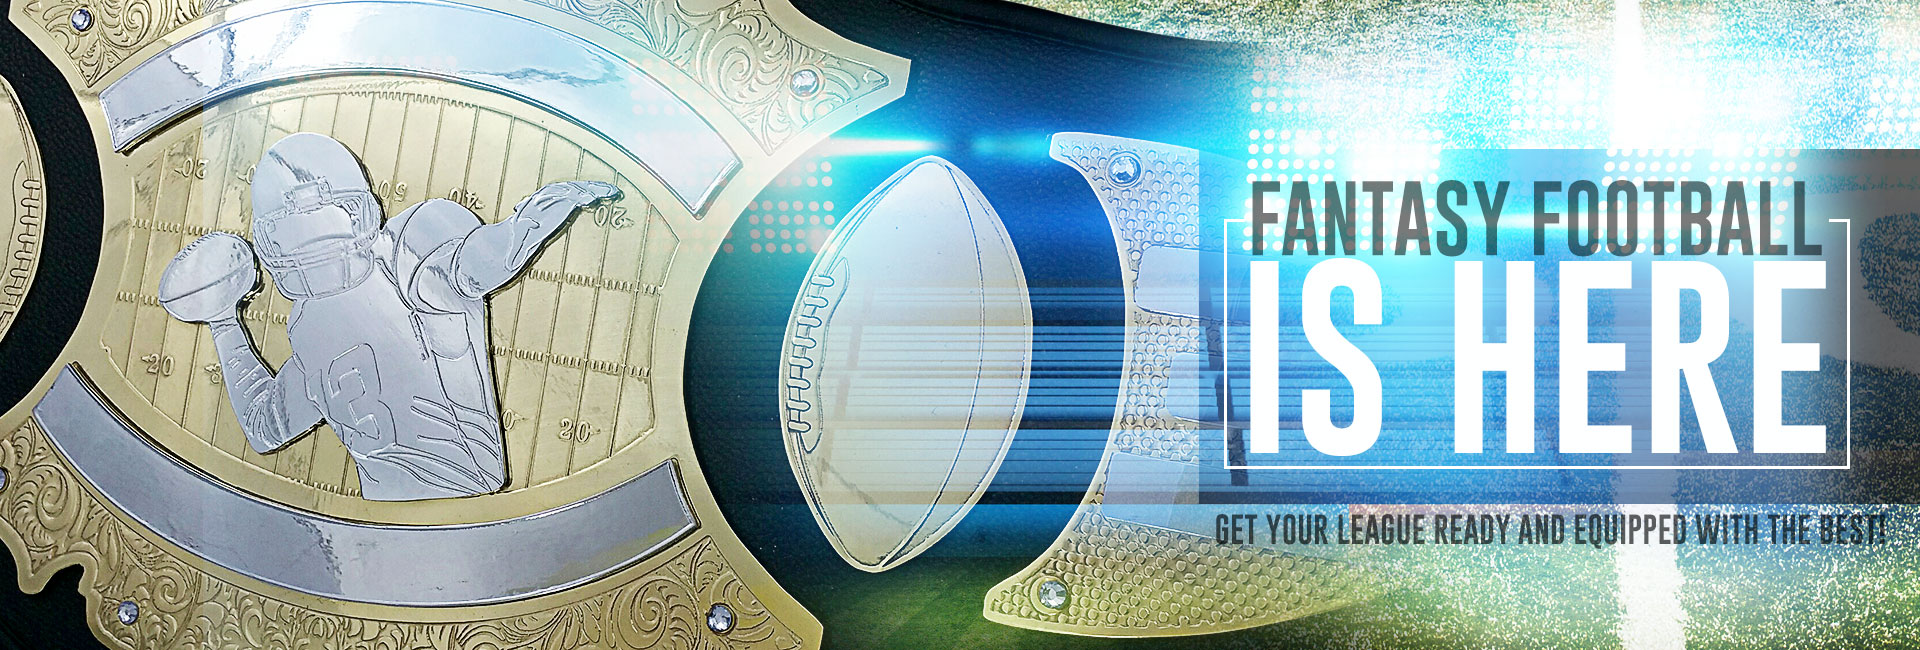 Football season is right around the corner and ProAmBelts is changing the game! Stock your 2017 champion with only the best Fantasy Football Belts